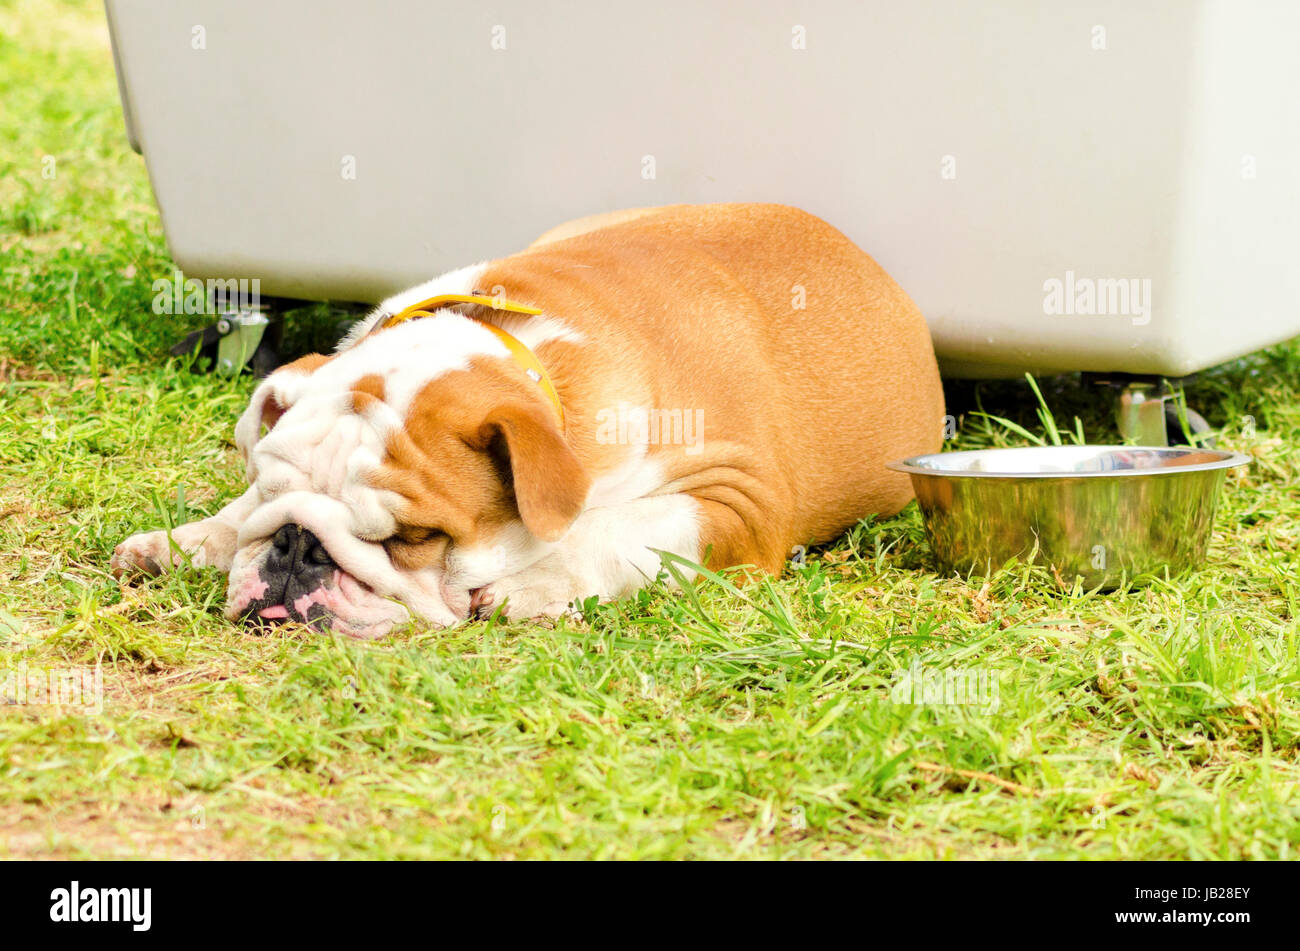 A small, young, beautiful, brown and white English Bulldog lying down on the lawn sleeping looking very peaceful, Stock Photo